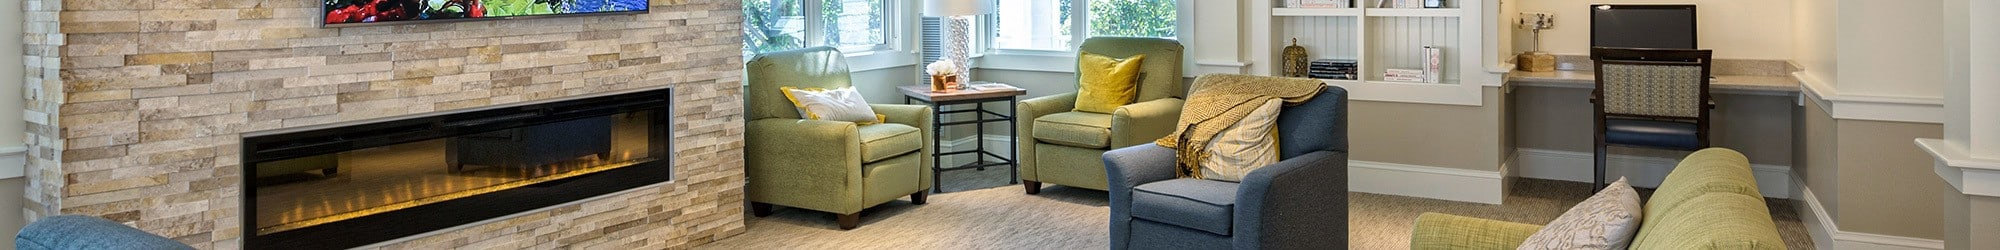 Schedule your visit to Maplewood at Weston today for a personal tour of our luxury senior living community